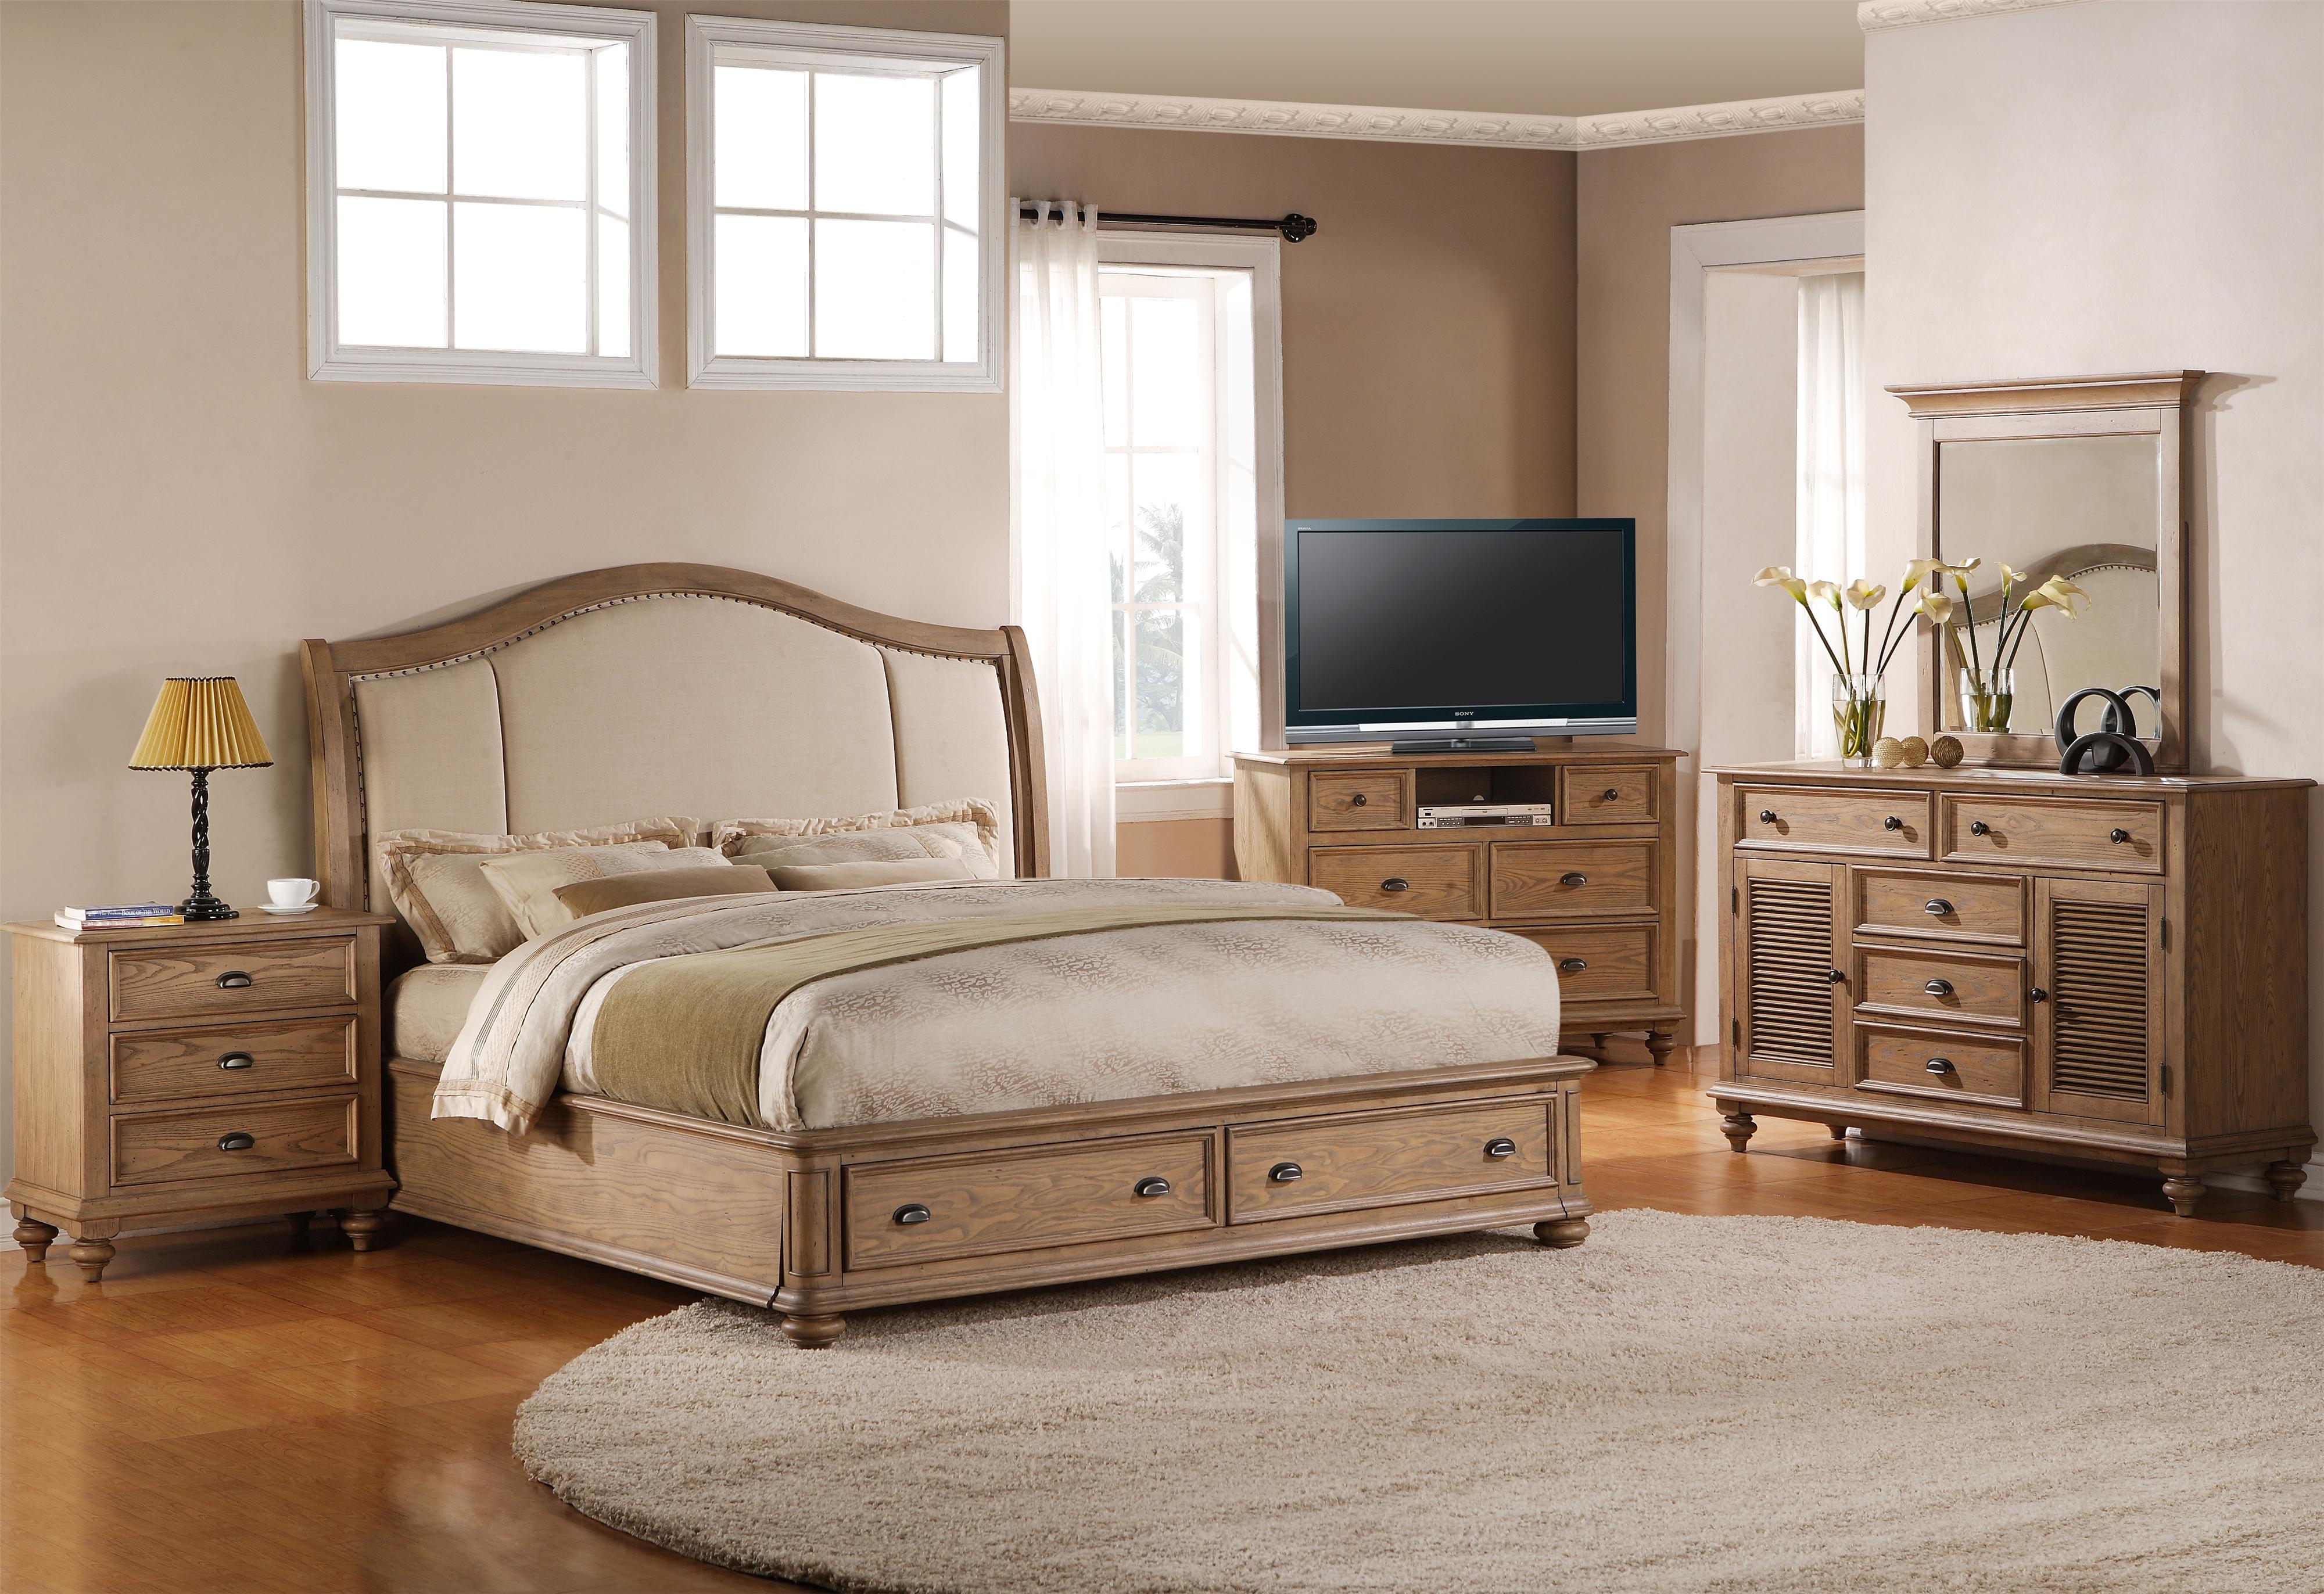 Coventry King Upholstered Headboard Bed with Storage ...